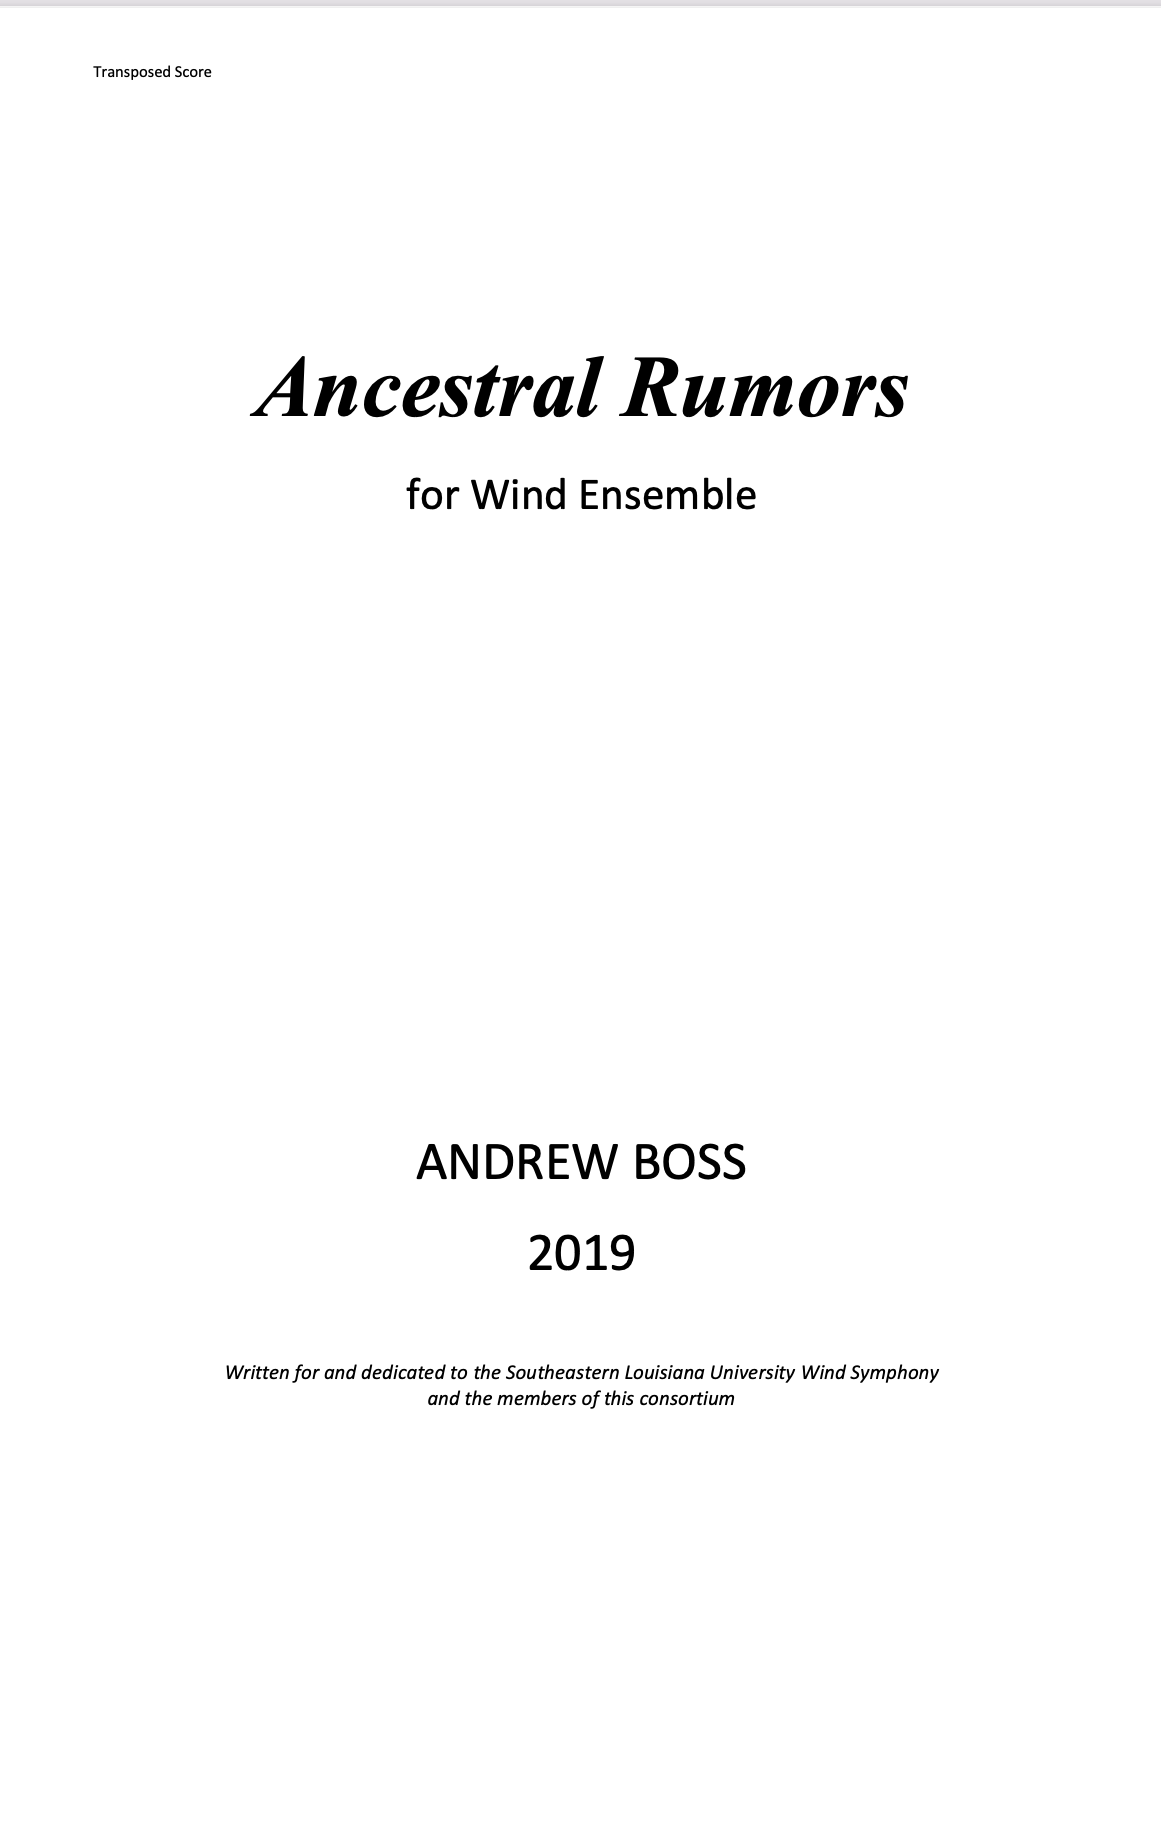 Ancestral Rumors by Andrew Boss